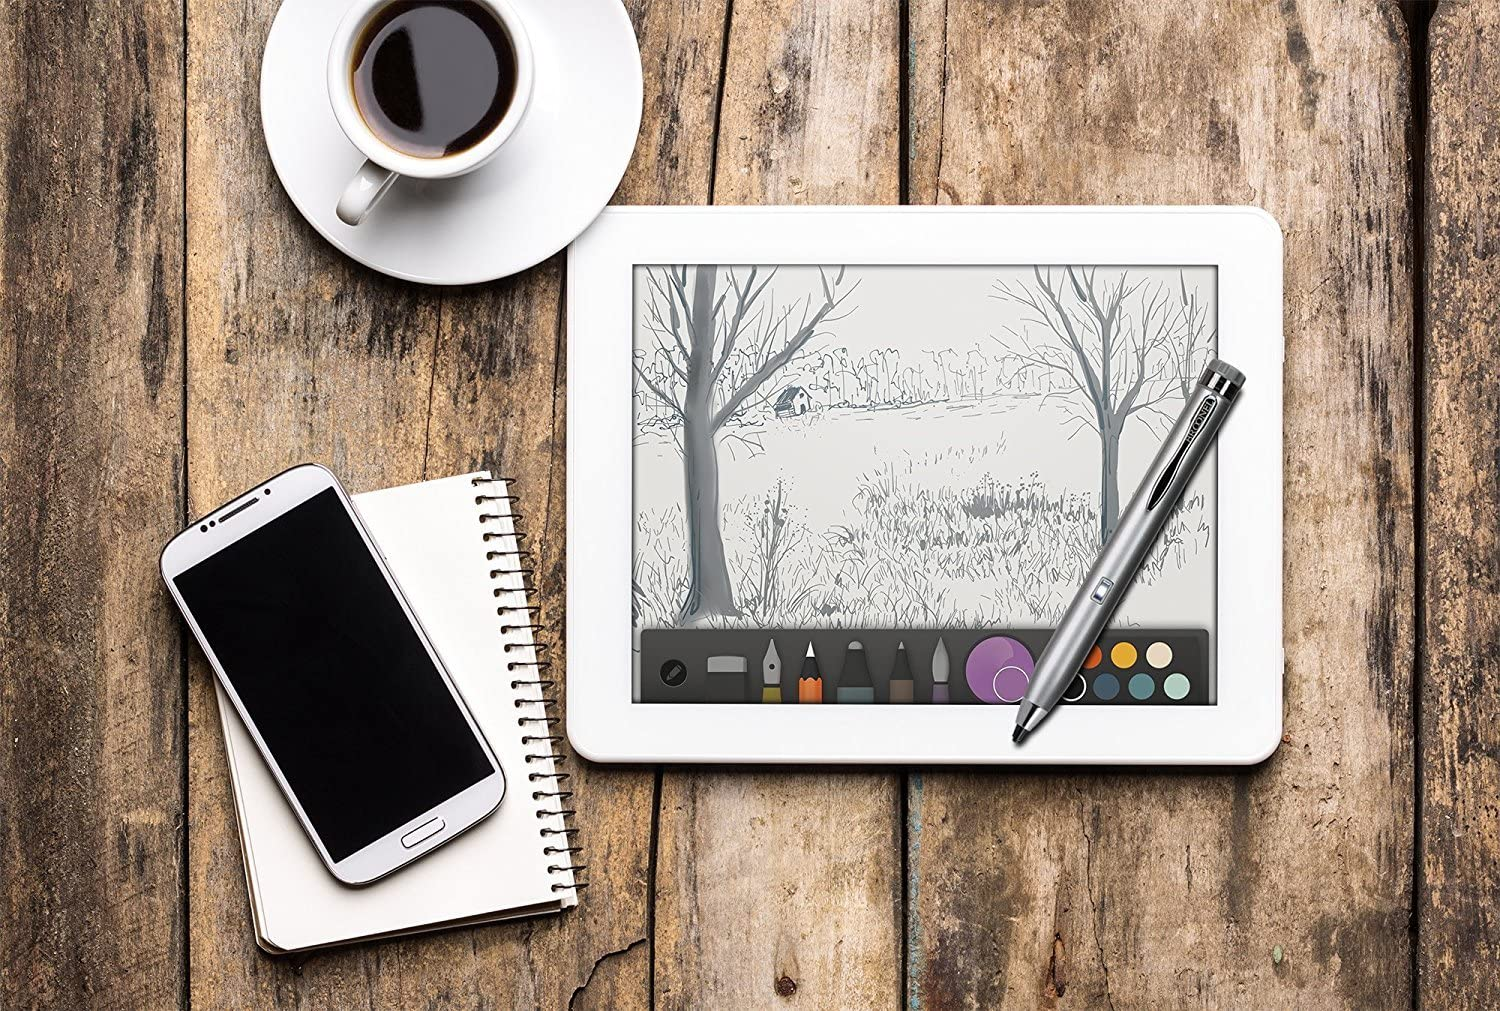 Broonel Grey Fine Point Digital Active Stylus Pen Compatible with The Samsung Galaxy Tab A T580 10.1 Tablet